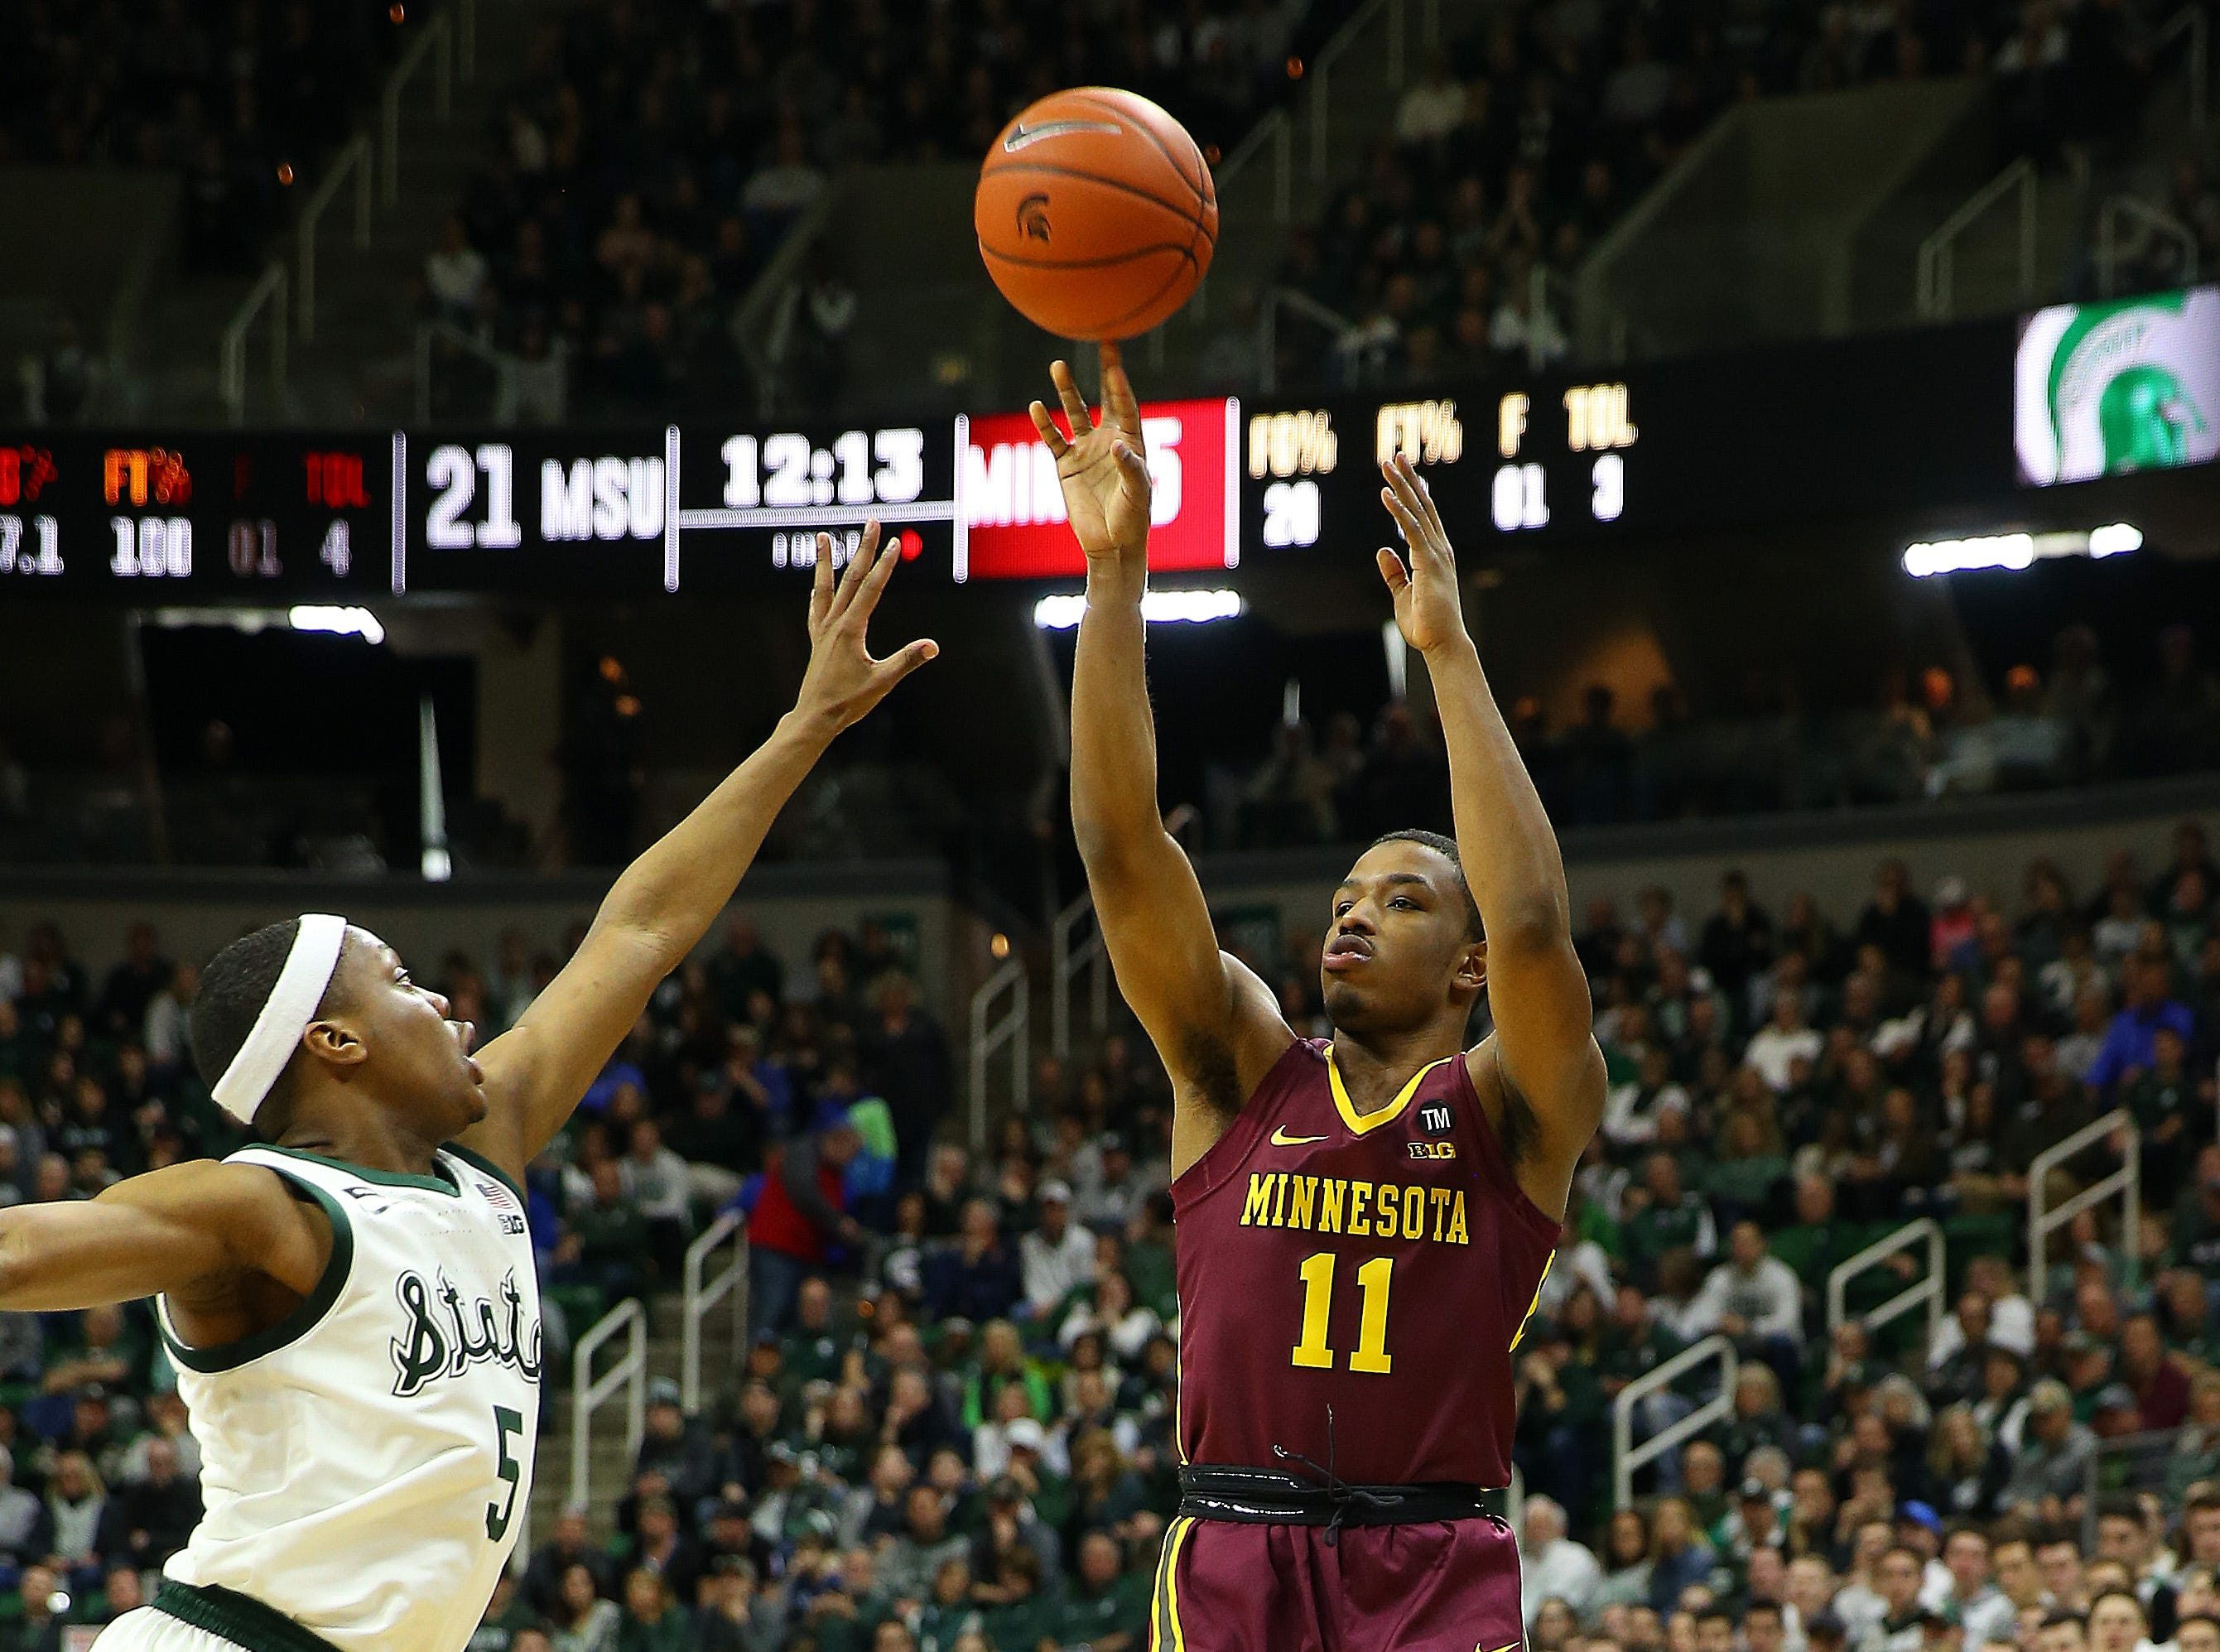 Feb 9, 2019; East Lansing, MI, USA; Minnesota Golden Gophers guard Isaiah Washington (11) shoots over Michigan State Spartans guard Cassius Winston (5) during the first half at the Breslin Center. Mandatory Credit: Mike Carter-USA TODAY Sports